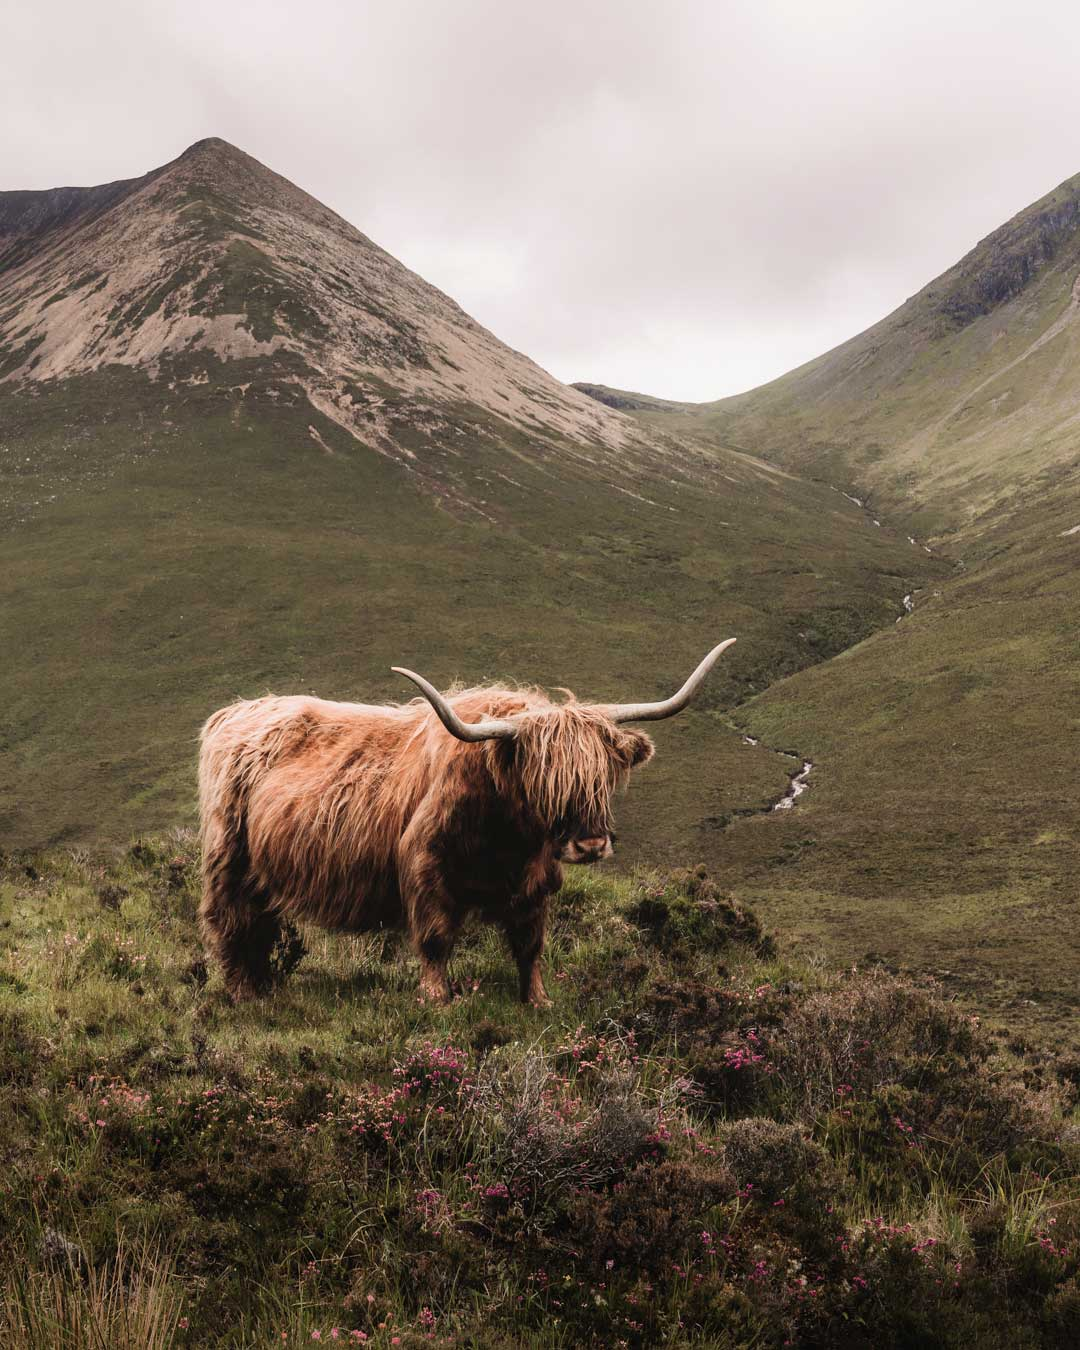 A Scottish highland cow in the Highlands of Scotland